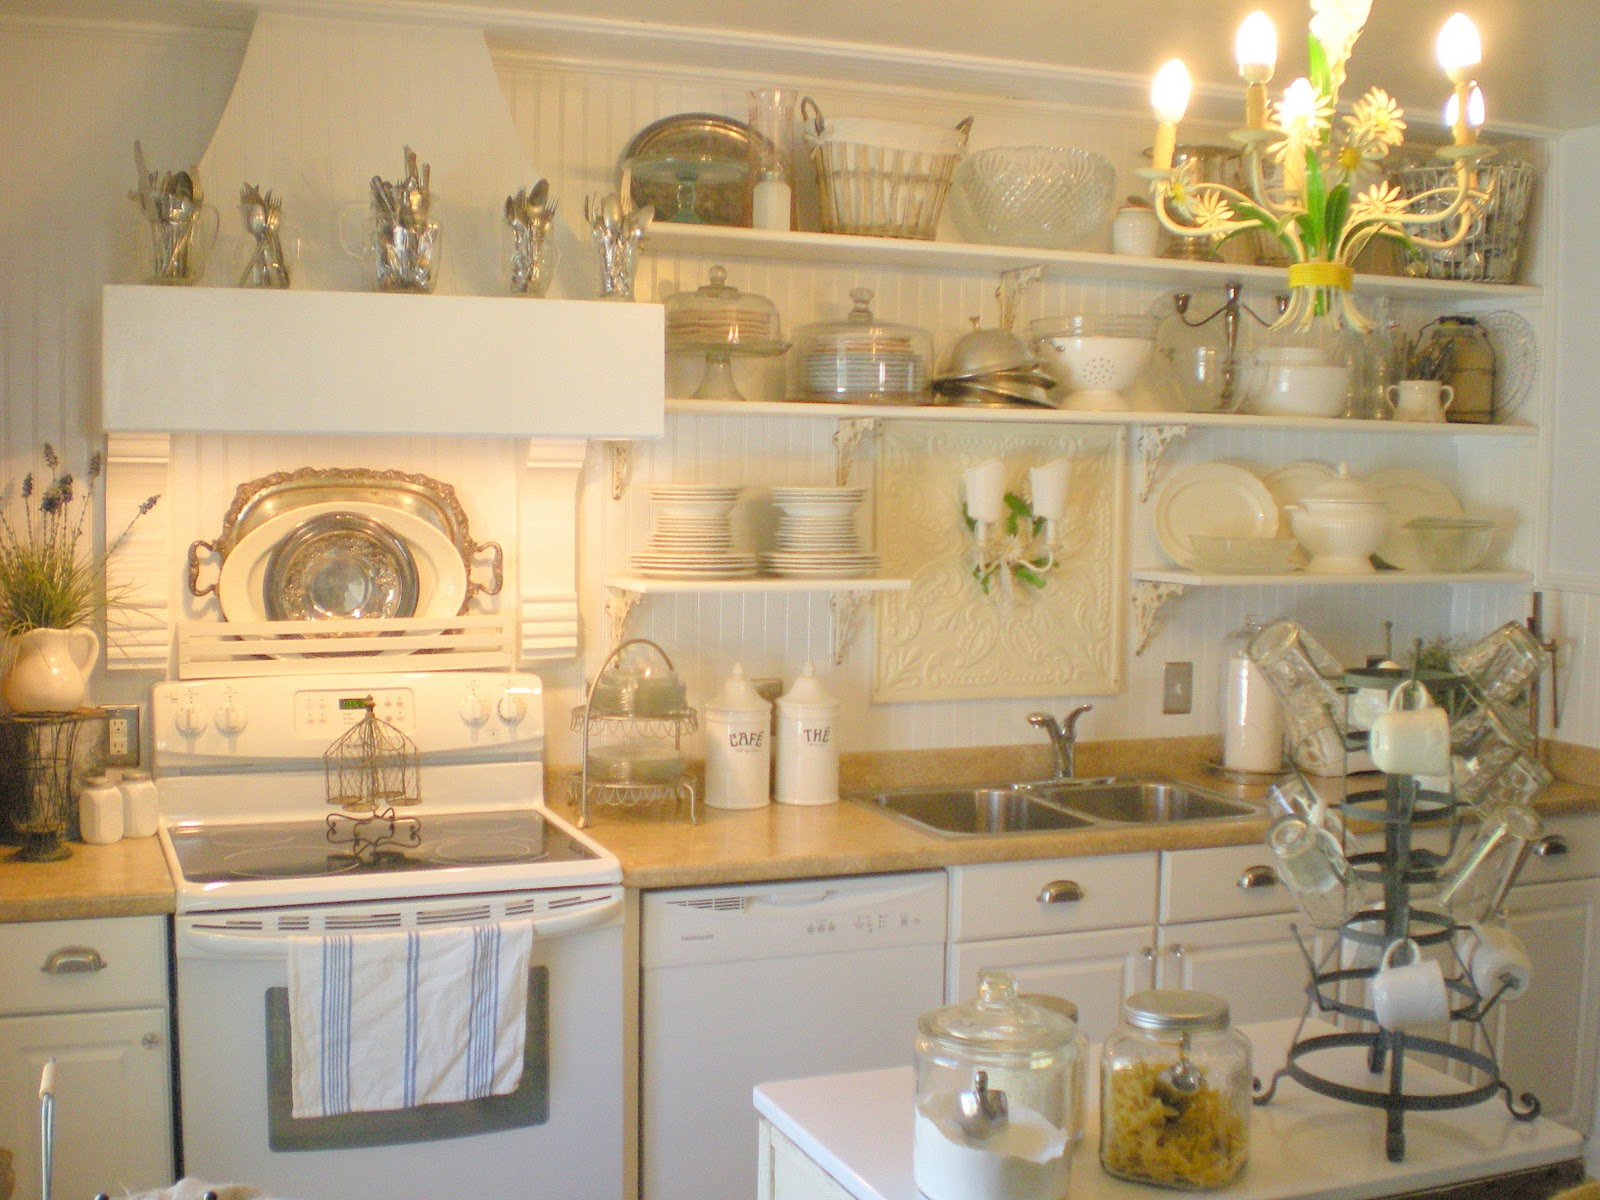 Remodelaholic french farm style kitchen renovation - French style kitchen decor ...